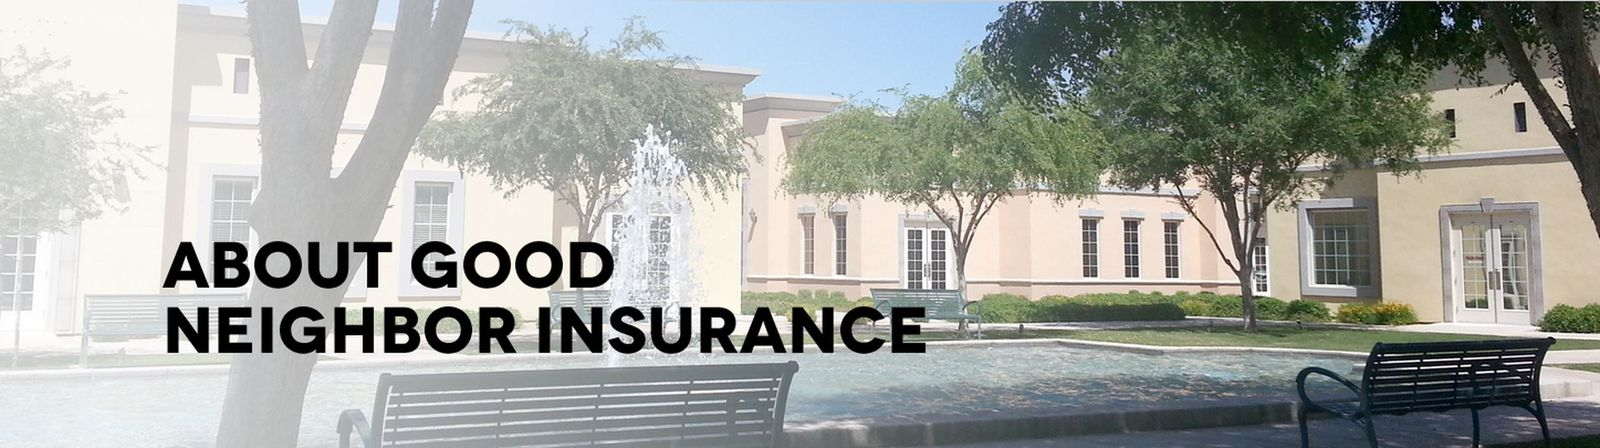 About Good Neighbor Insurance